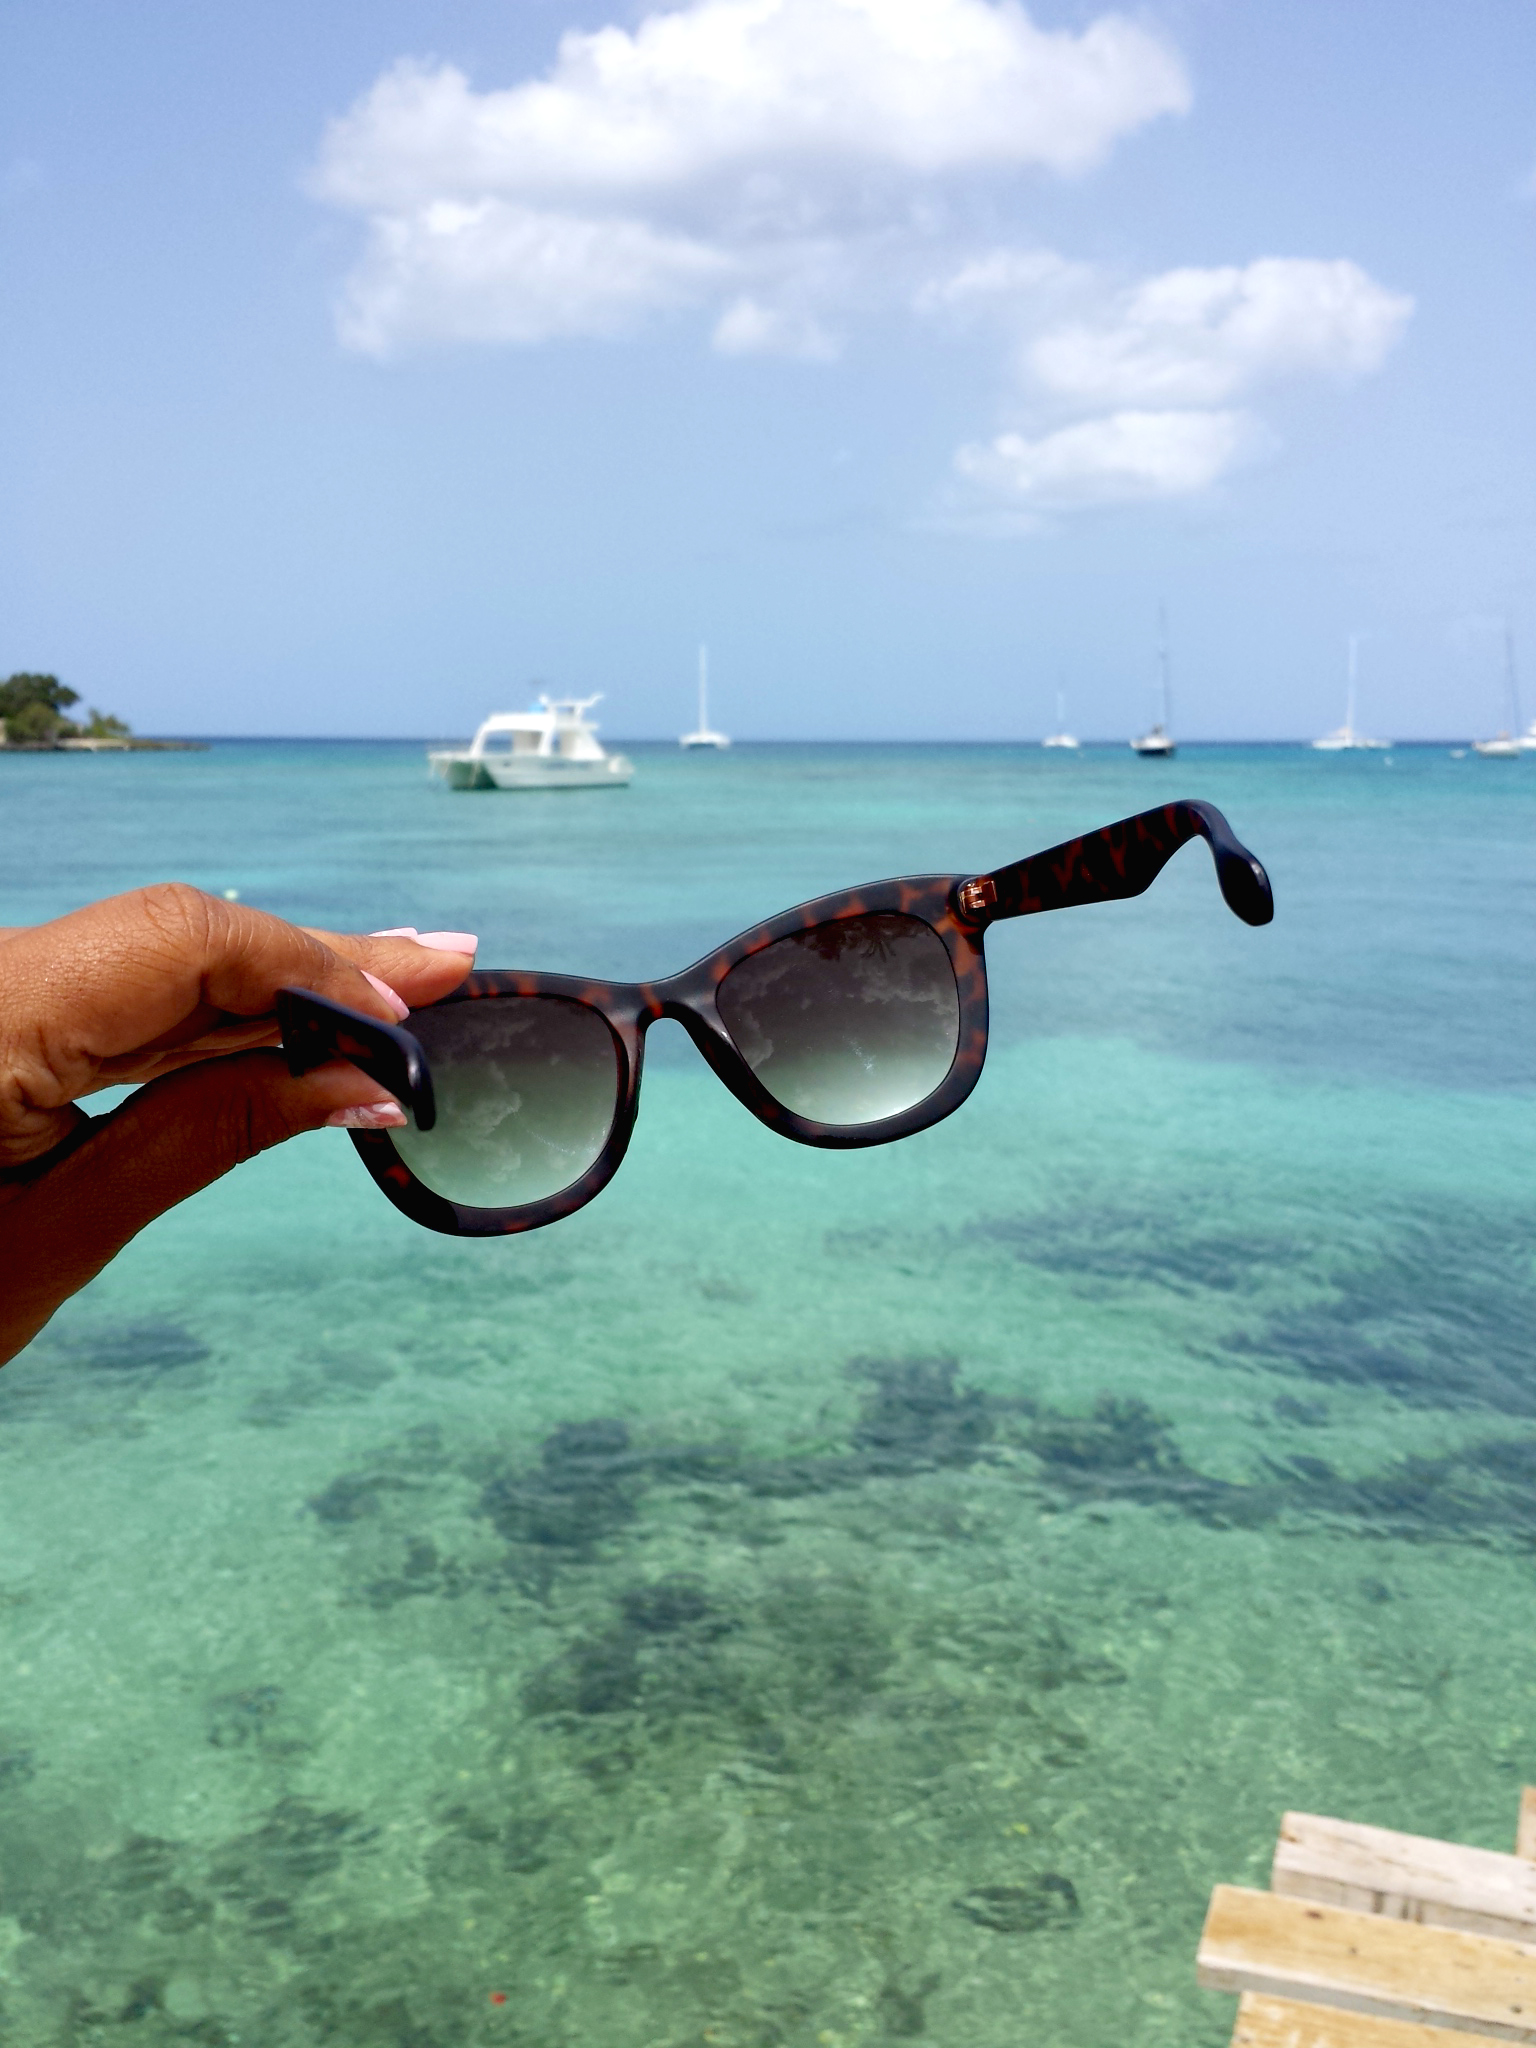 Republique_dominicaine_roadtrip_bayahibe_sunnies